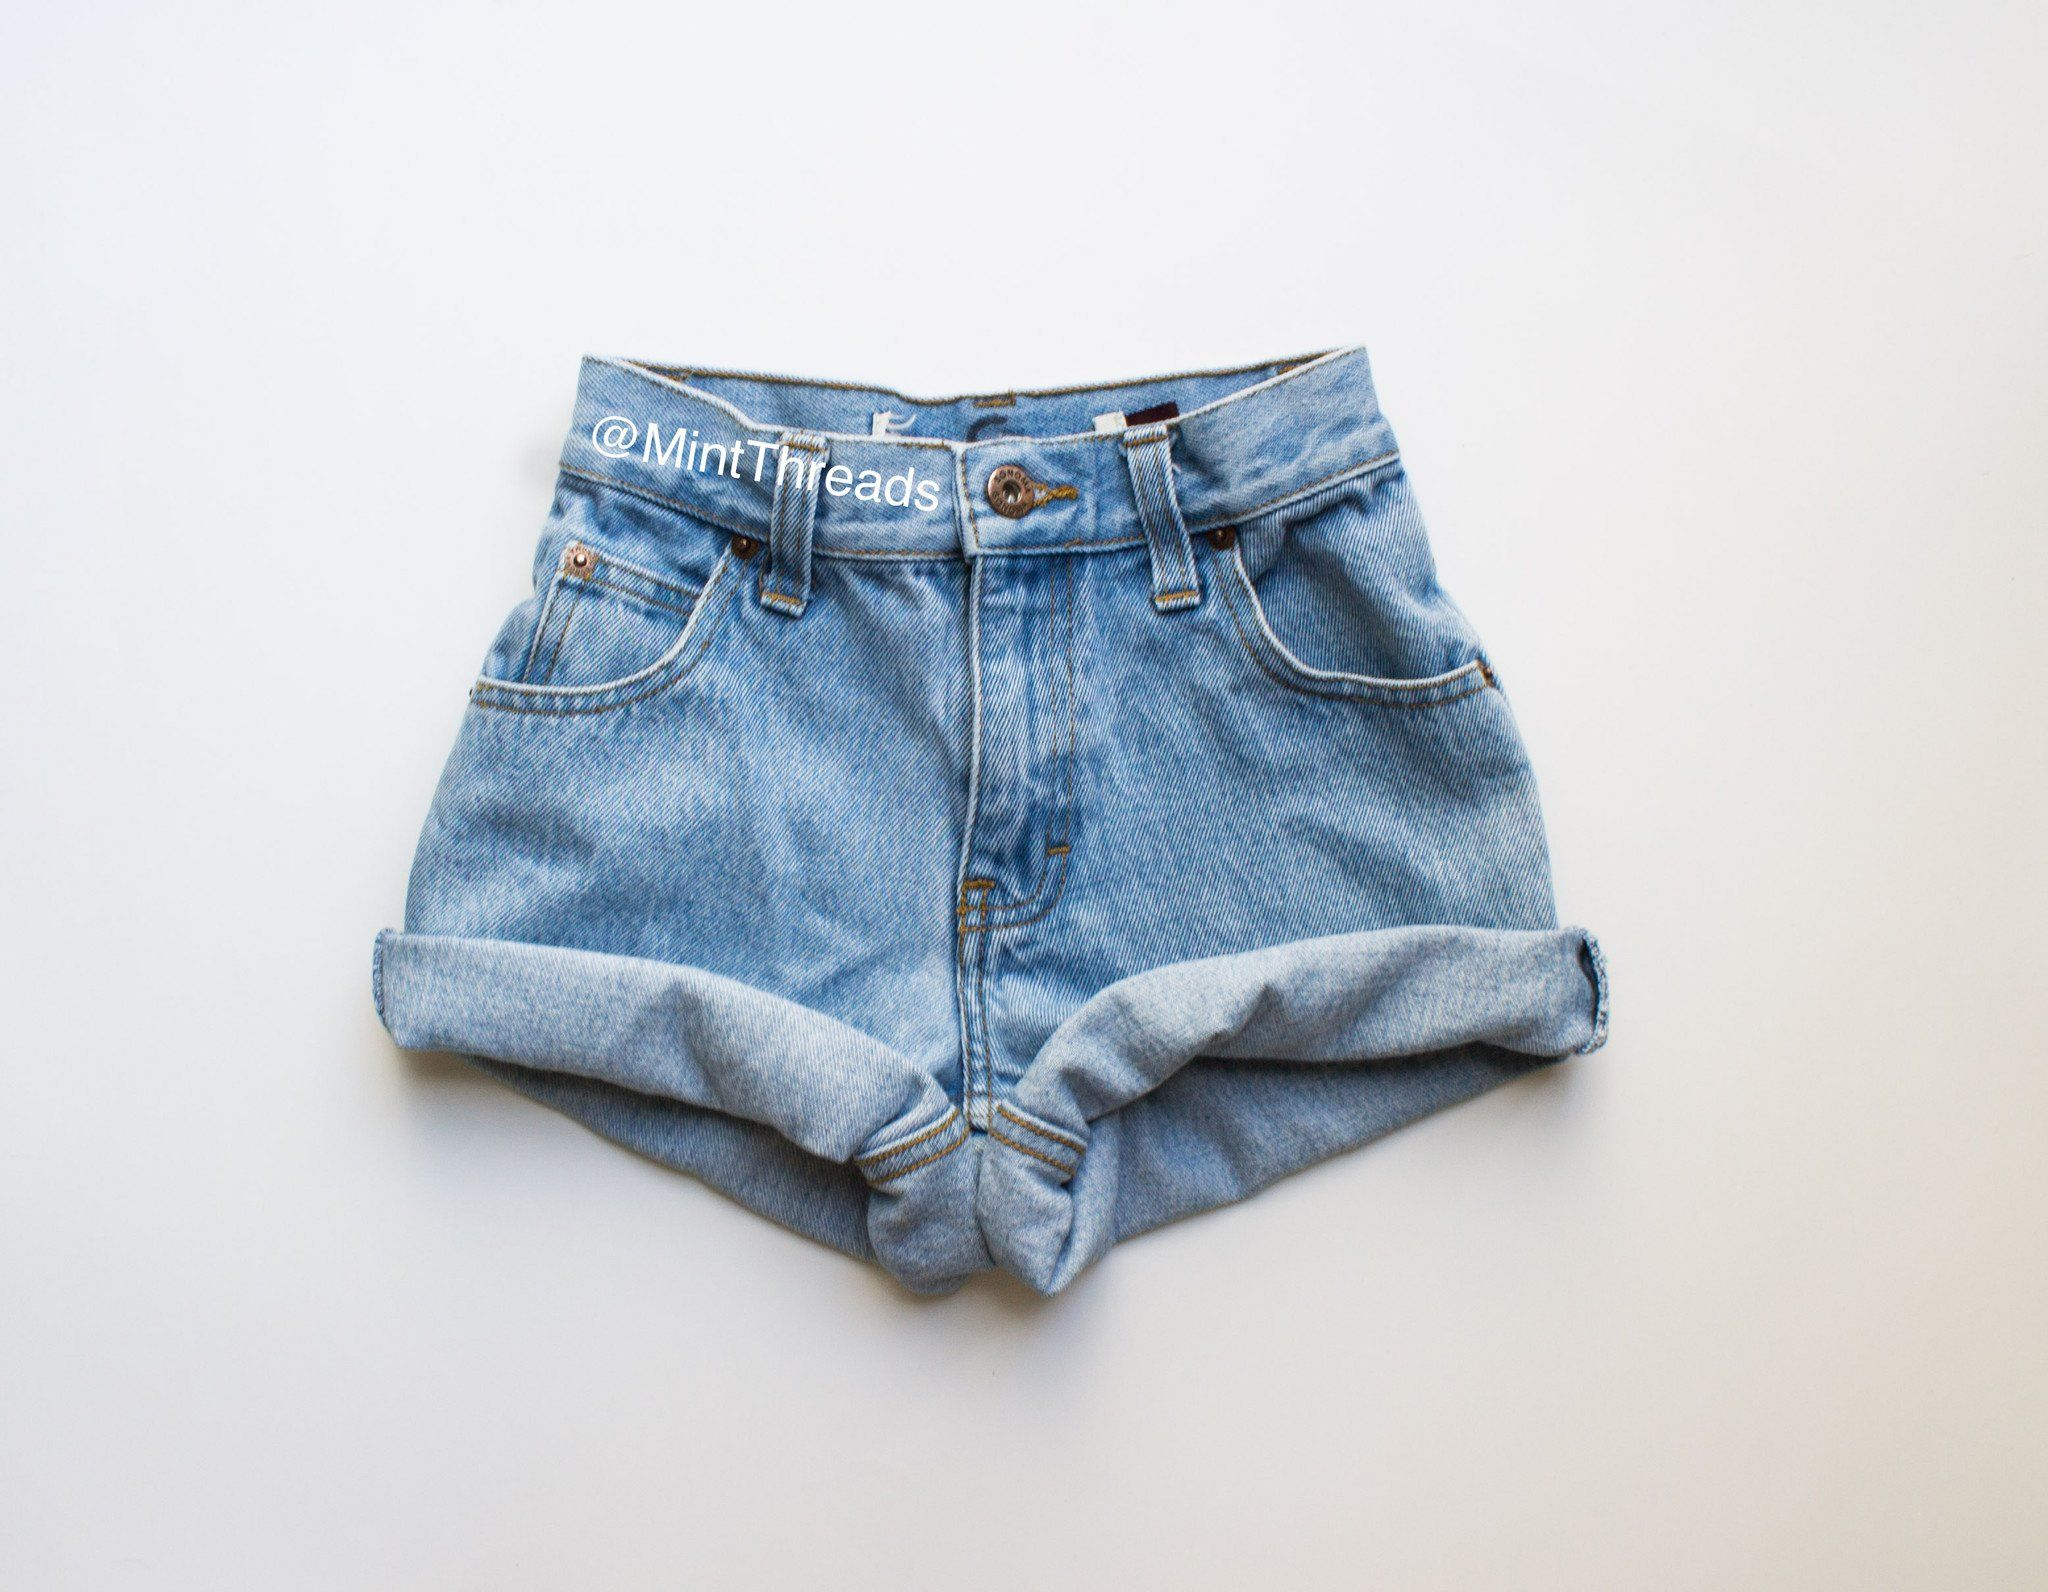 17 Best ideas about Vintage High Waisted Shorts on Pinterest ...